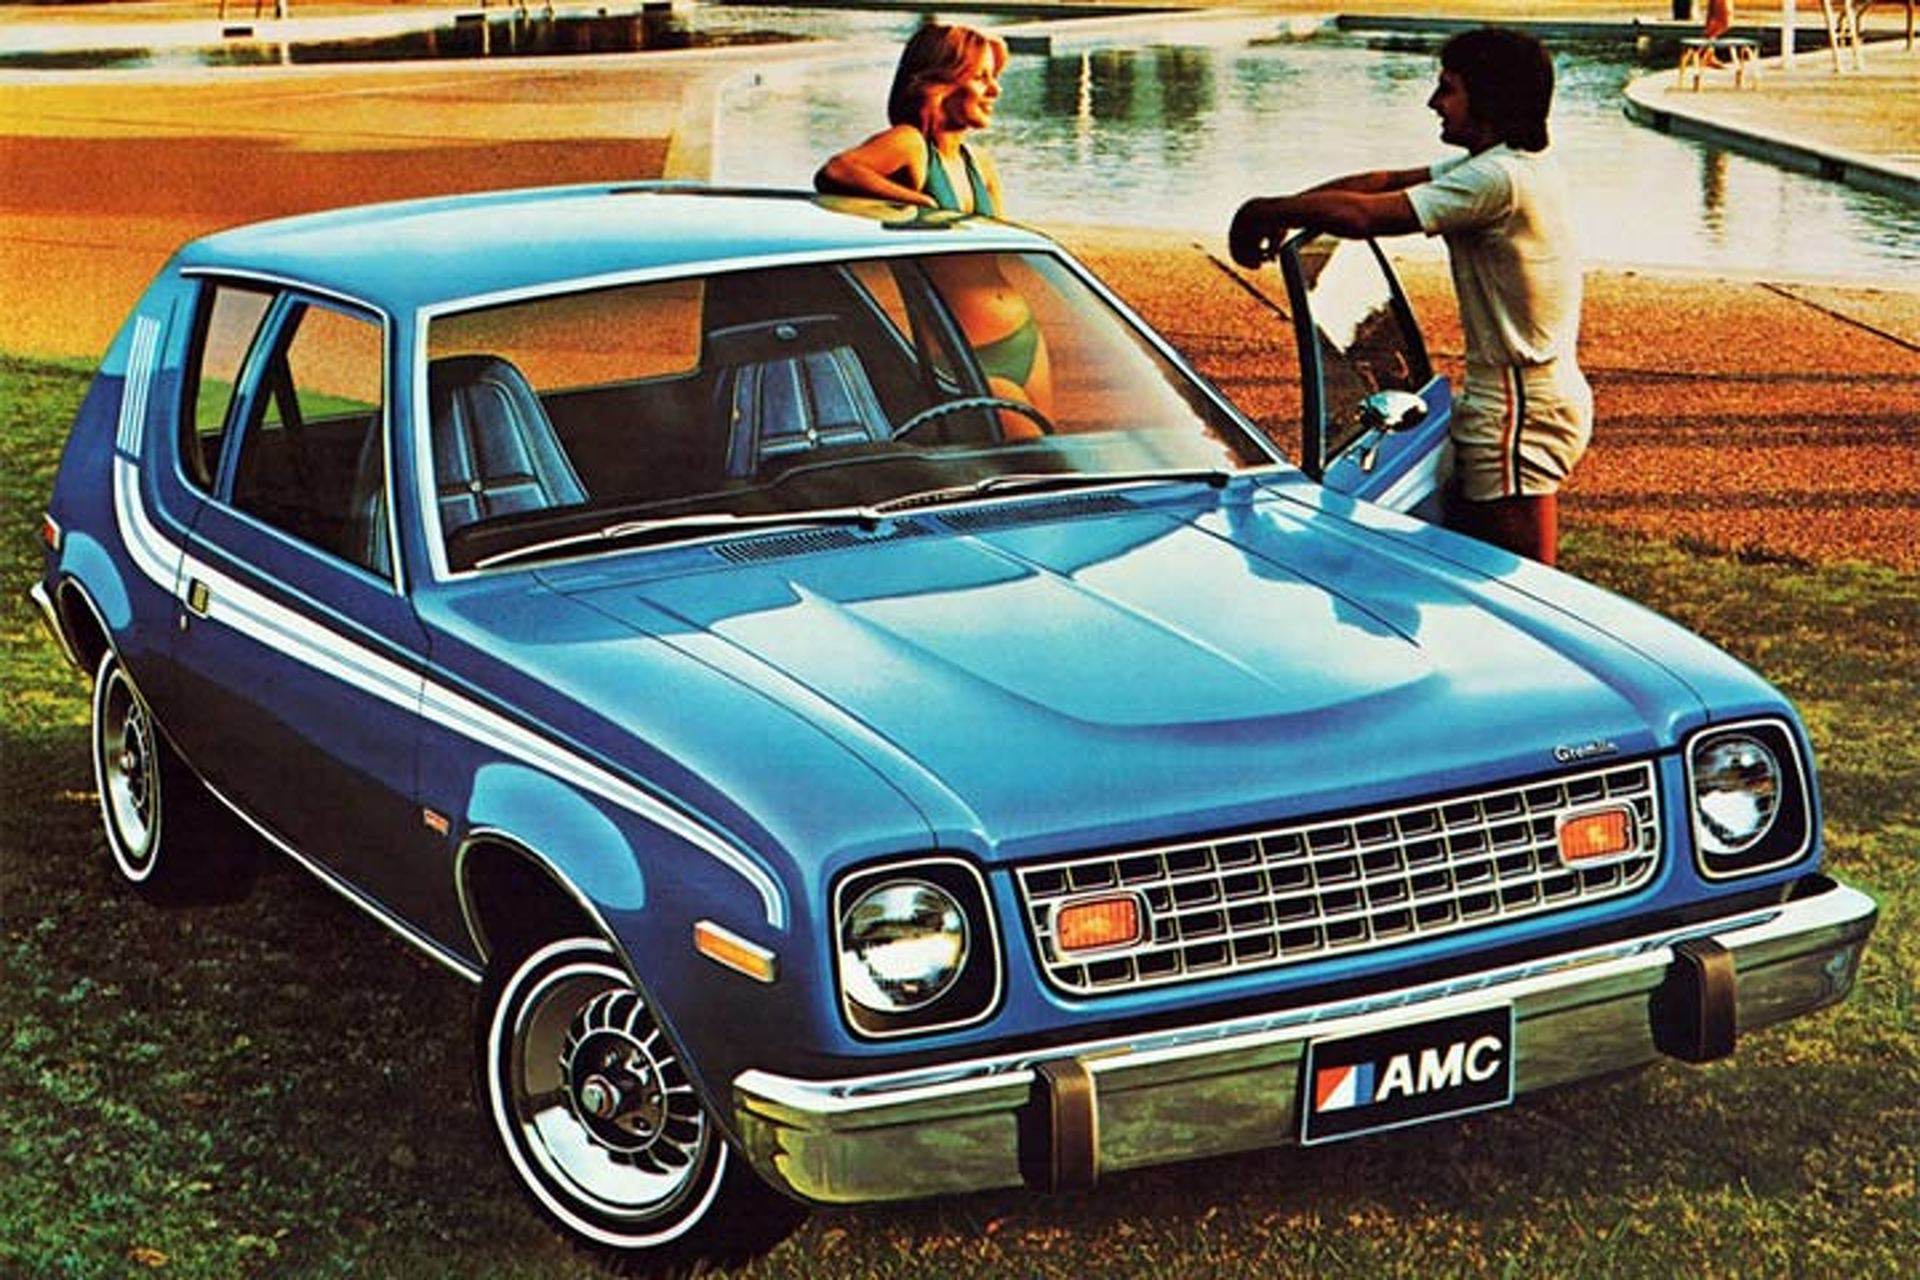 Of The Weirdest Car Names - Classic car names and pictures